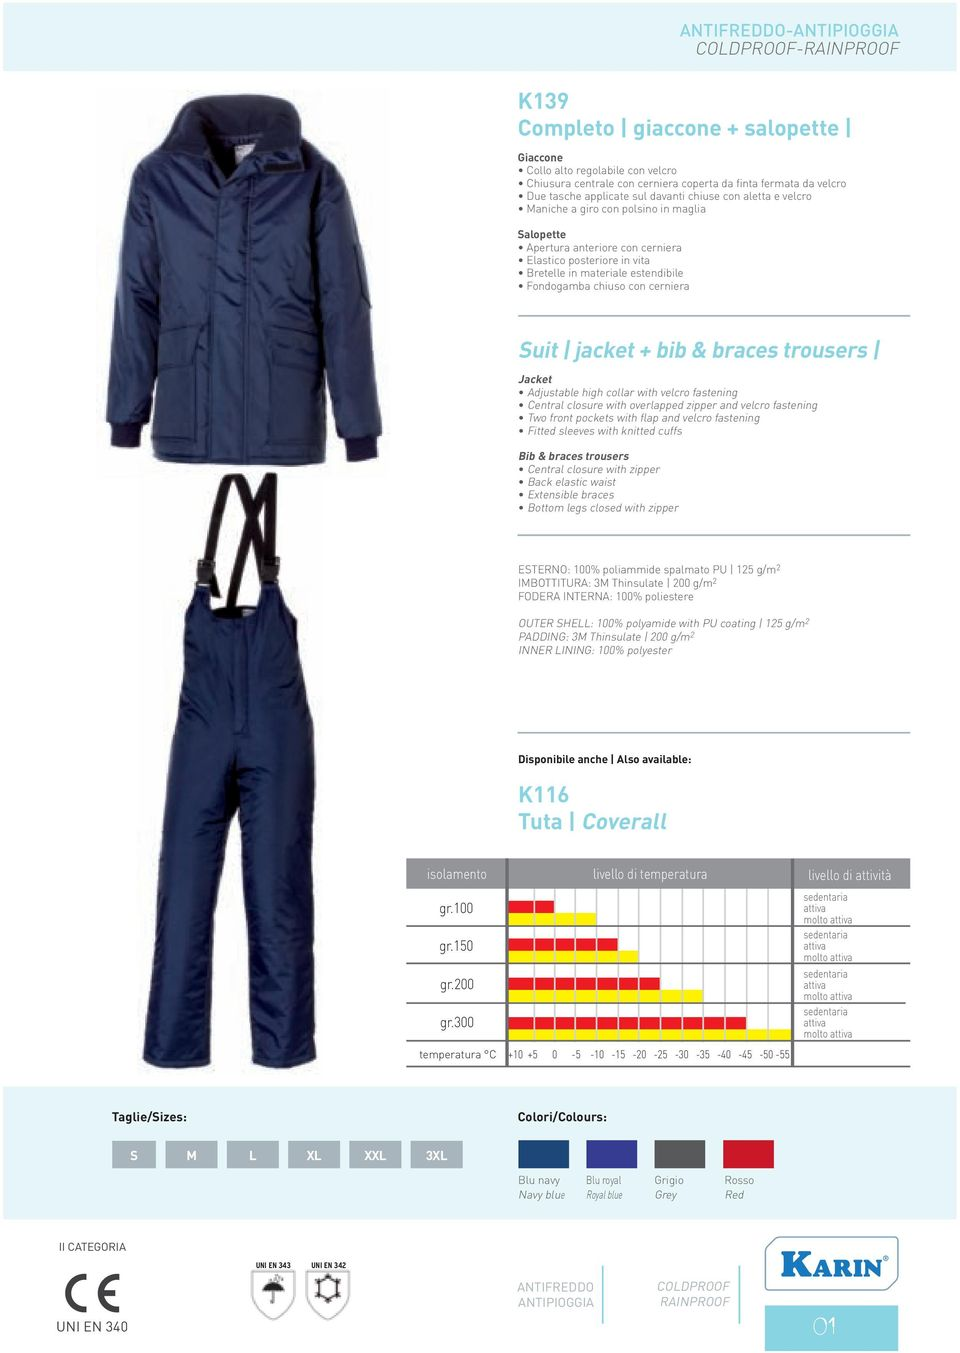 bib & braces trousers Jacket Adjustable high collar with velcro fastening Central closure with overlapped zipper and velcro fastening Two front pockets with flap and velcro fastening Fitted sleeves